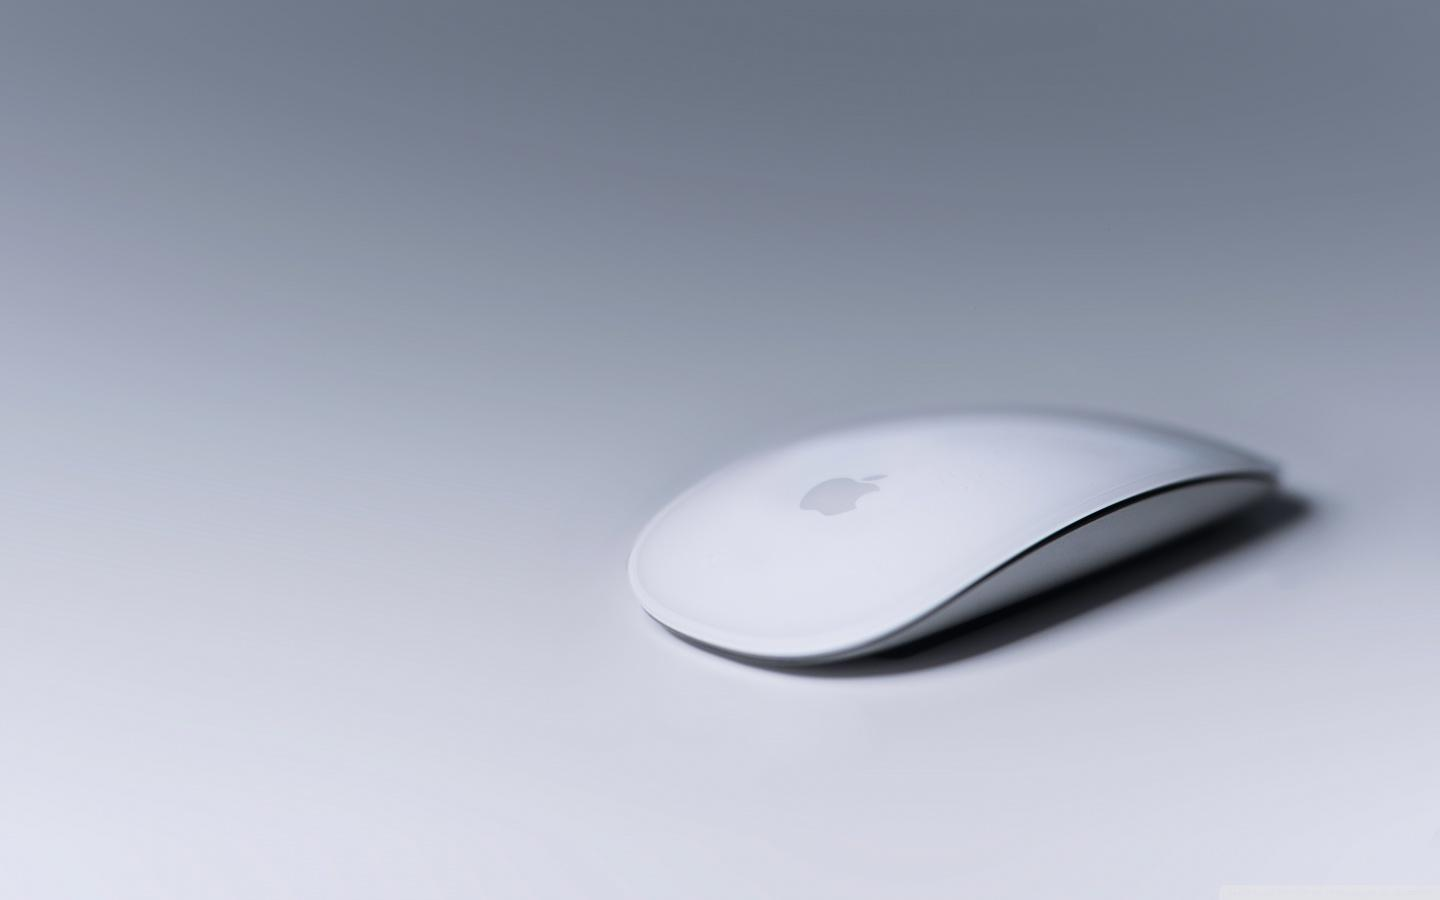 Apple Mouse Design Wallpapers Wallpaper Cave